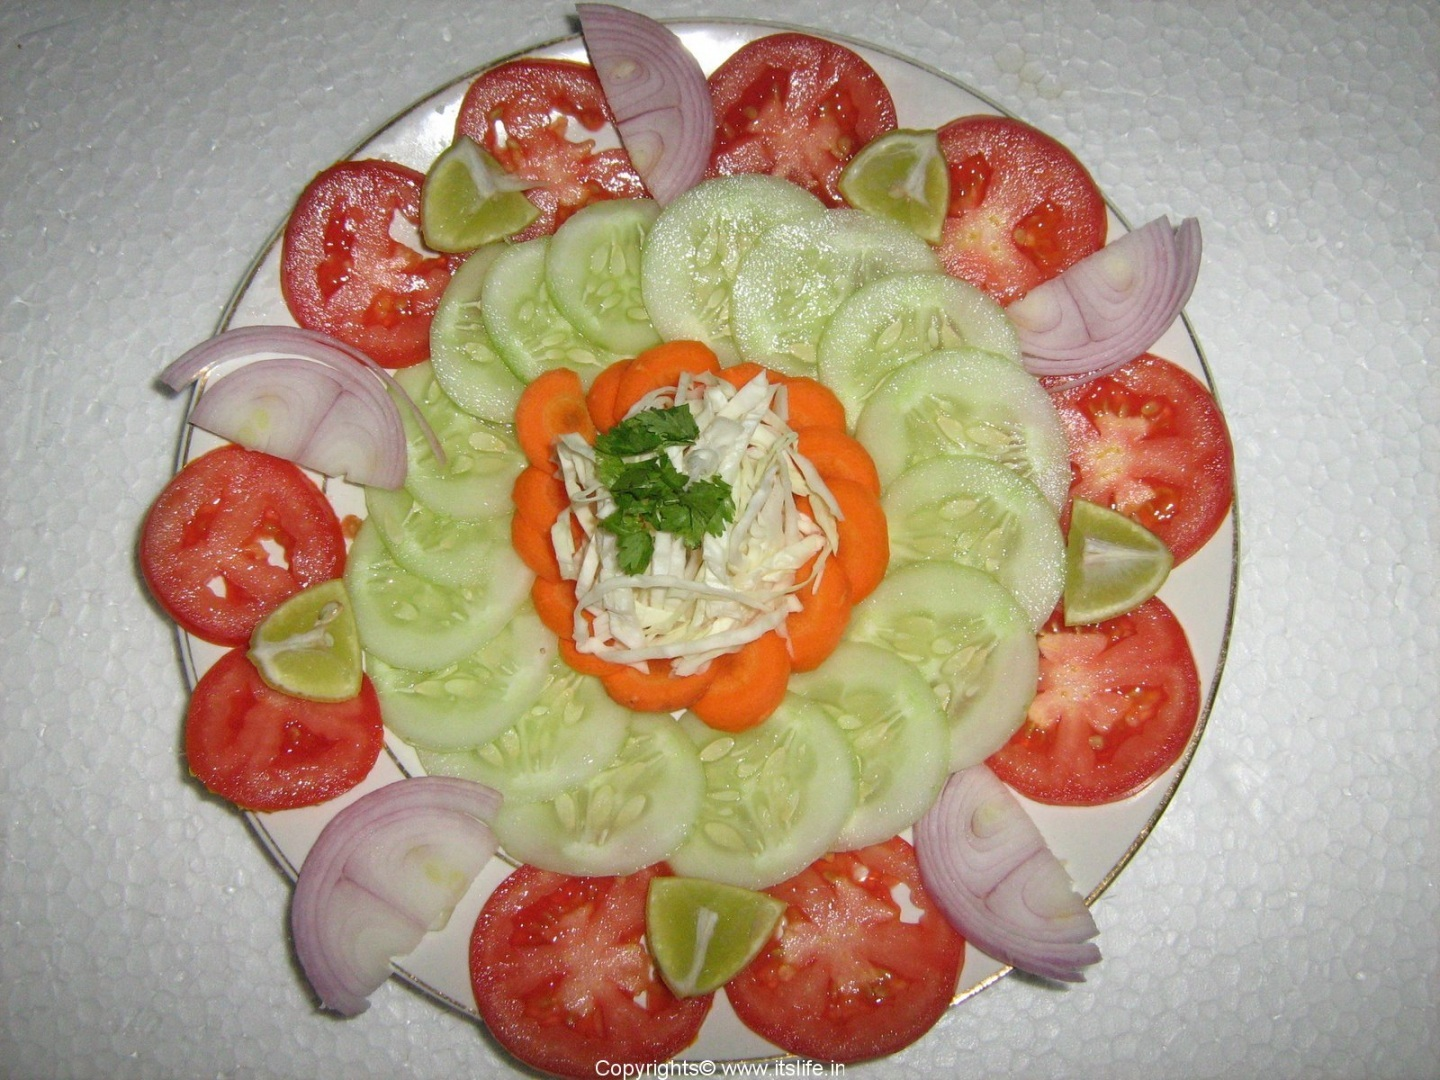 How to decorate the salad under a fur coat 3